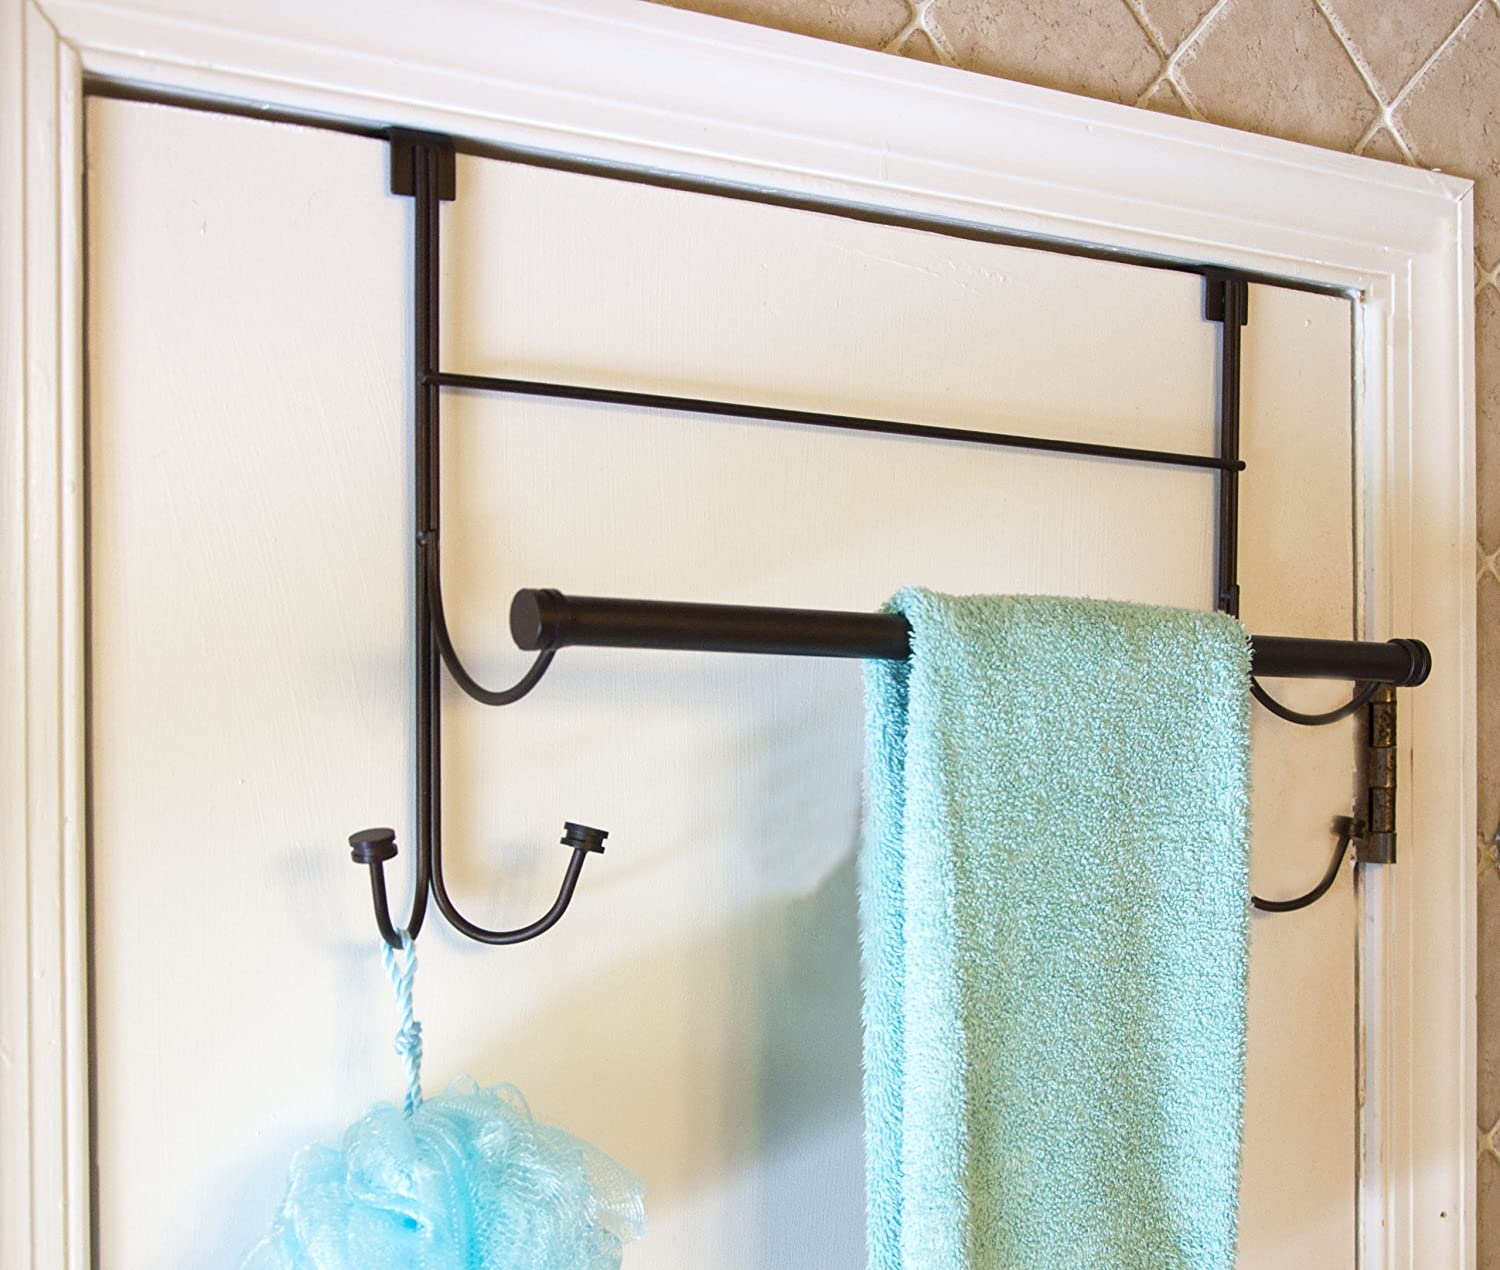 Amazon.com: Bathsense Over The Door Towel Rack With 4 Hooks, Oil Rubbed  Bronze: Home U0026 Kitchen